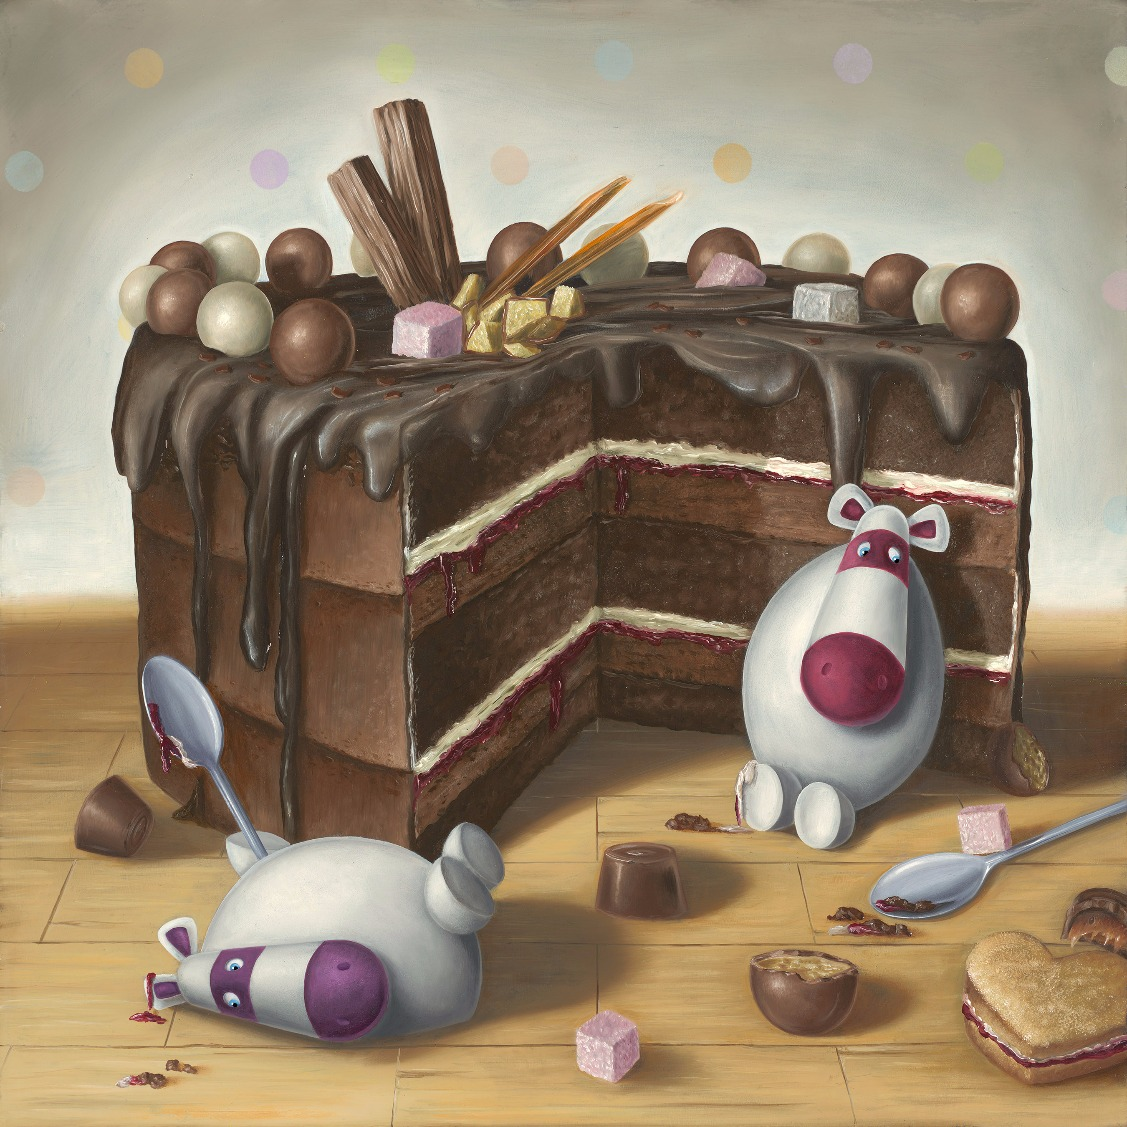 Let Them Eat Cake by Peter Smith, Family